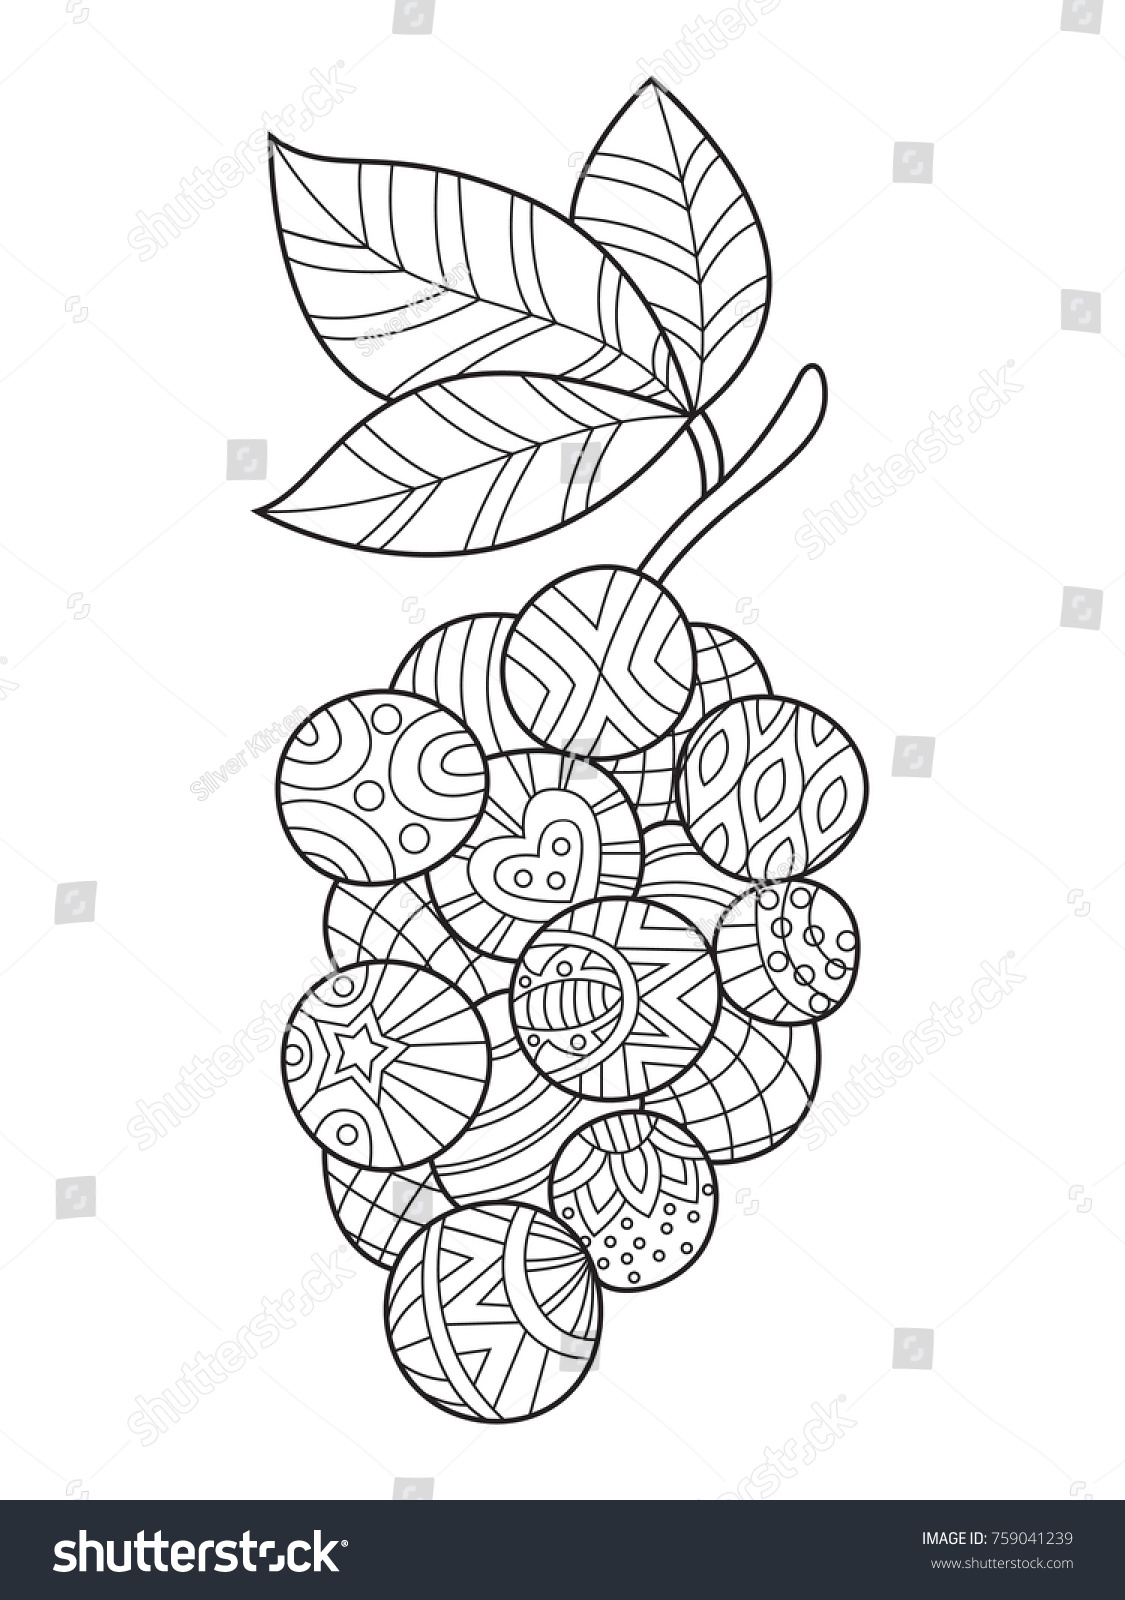 Outlined Zentangle Antistress Coloring Page Appletree Stock Vector ...